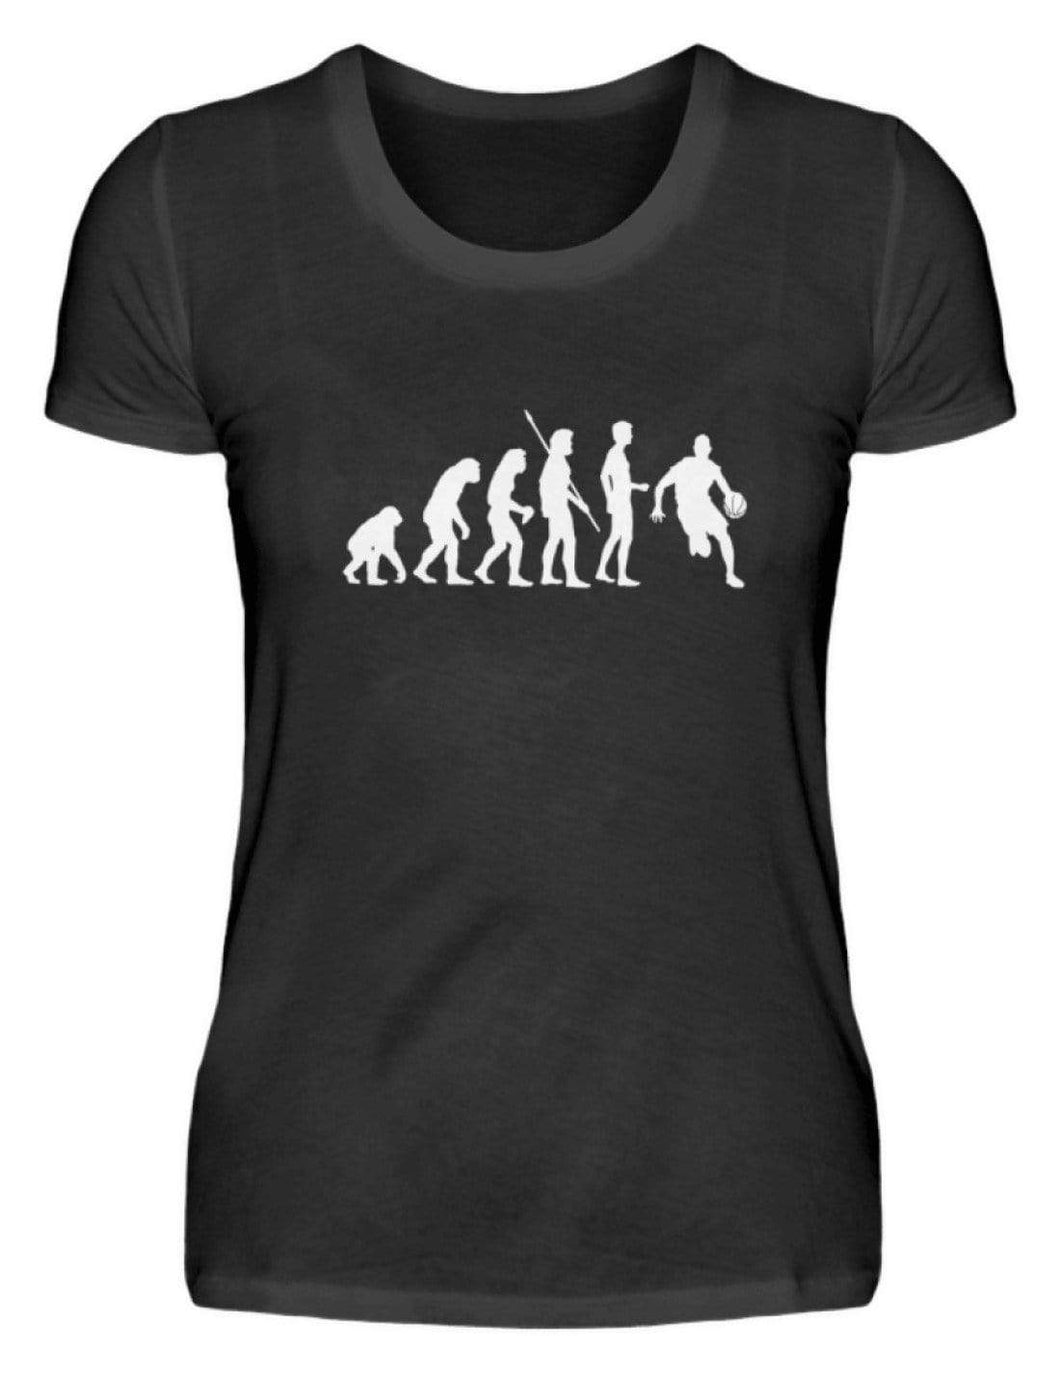 Damen Basic T-Shirt Black / S Basketballer: Evolution Basketballspieler  - Damenshirt (4362254385204)